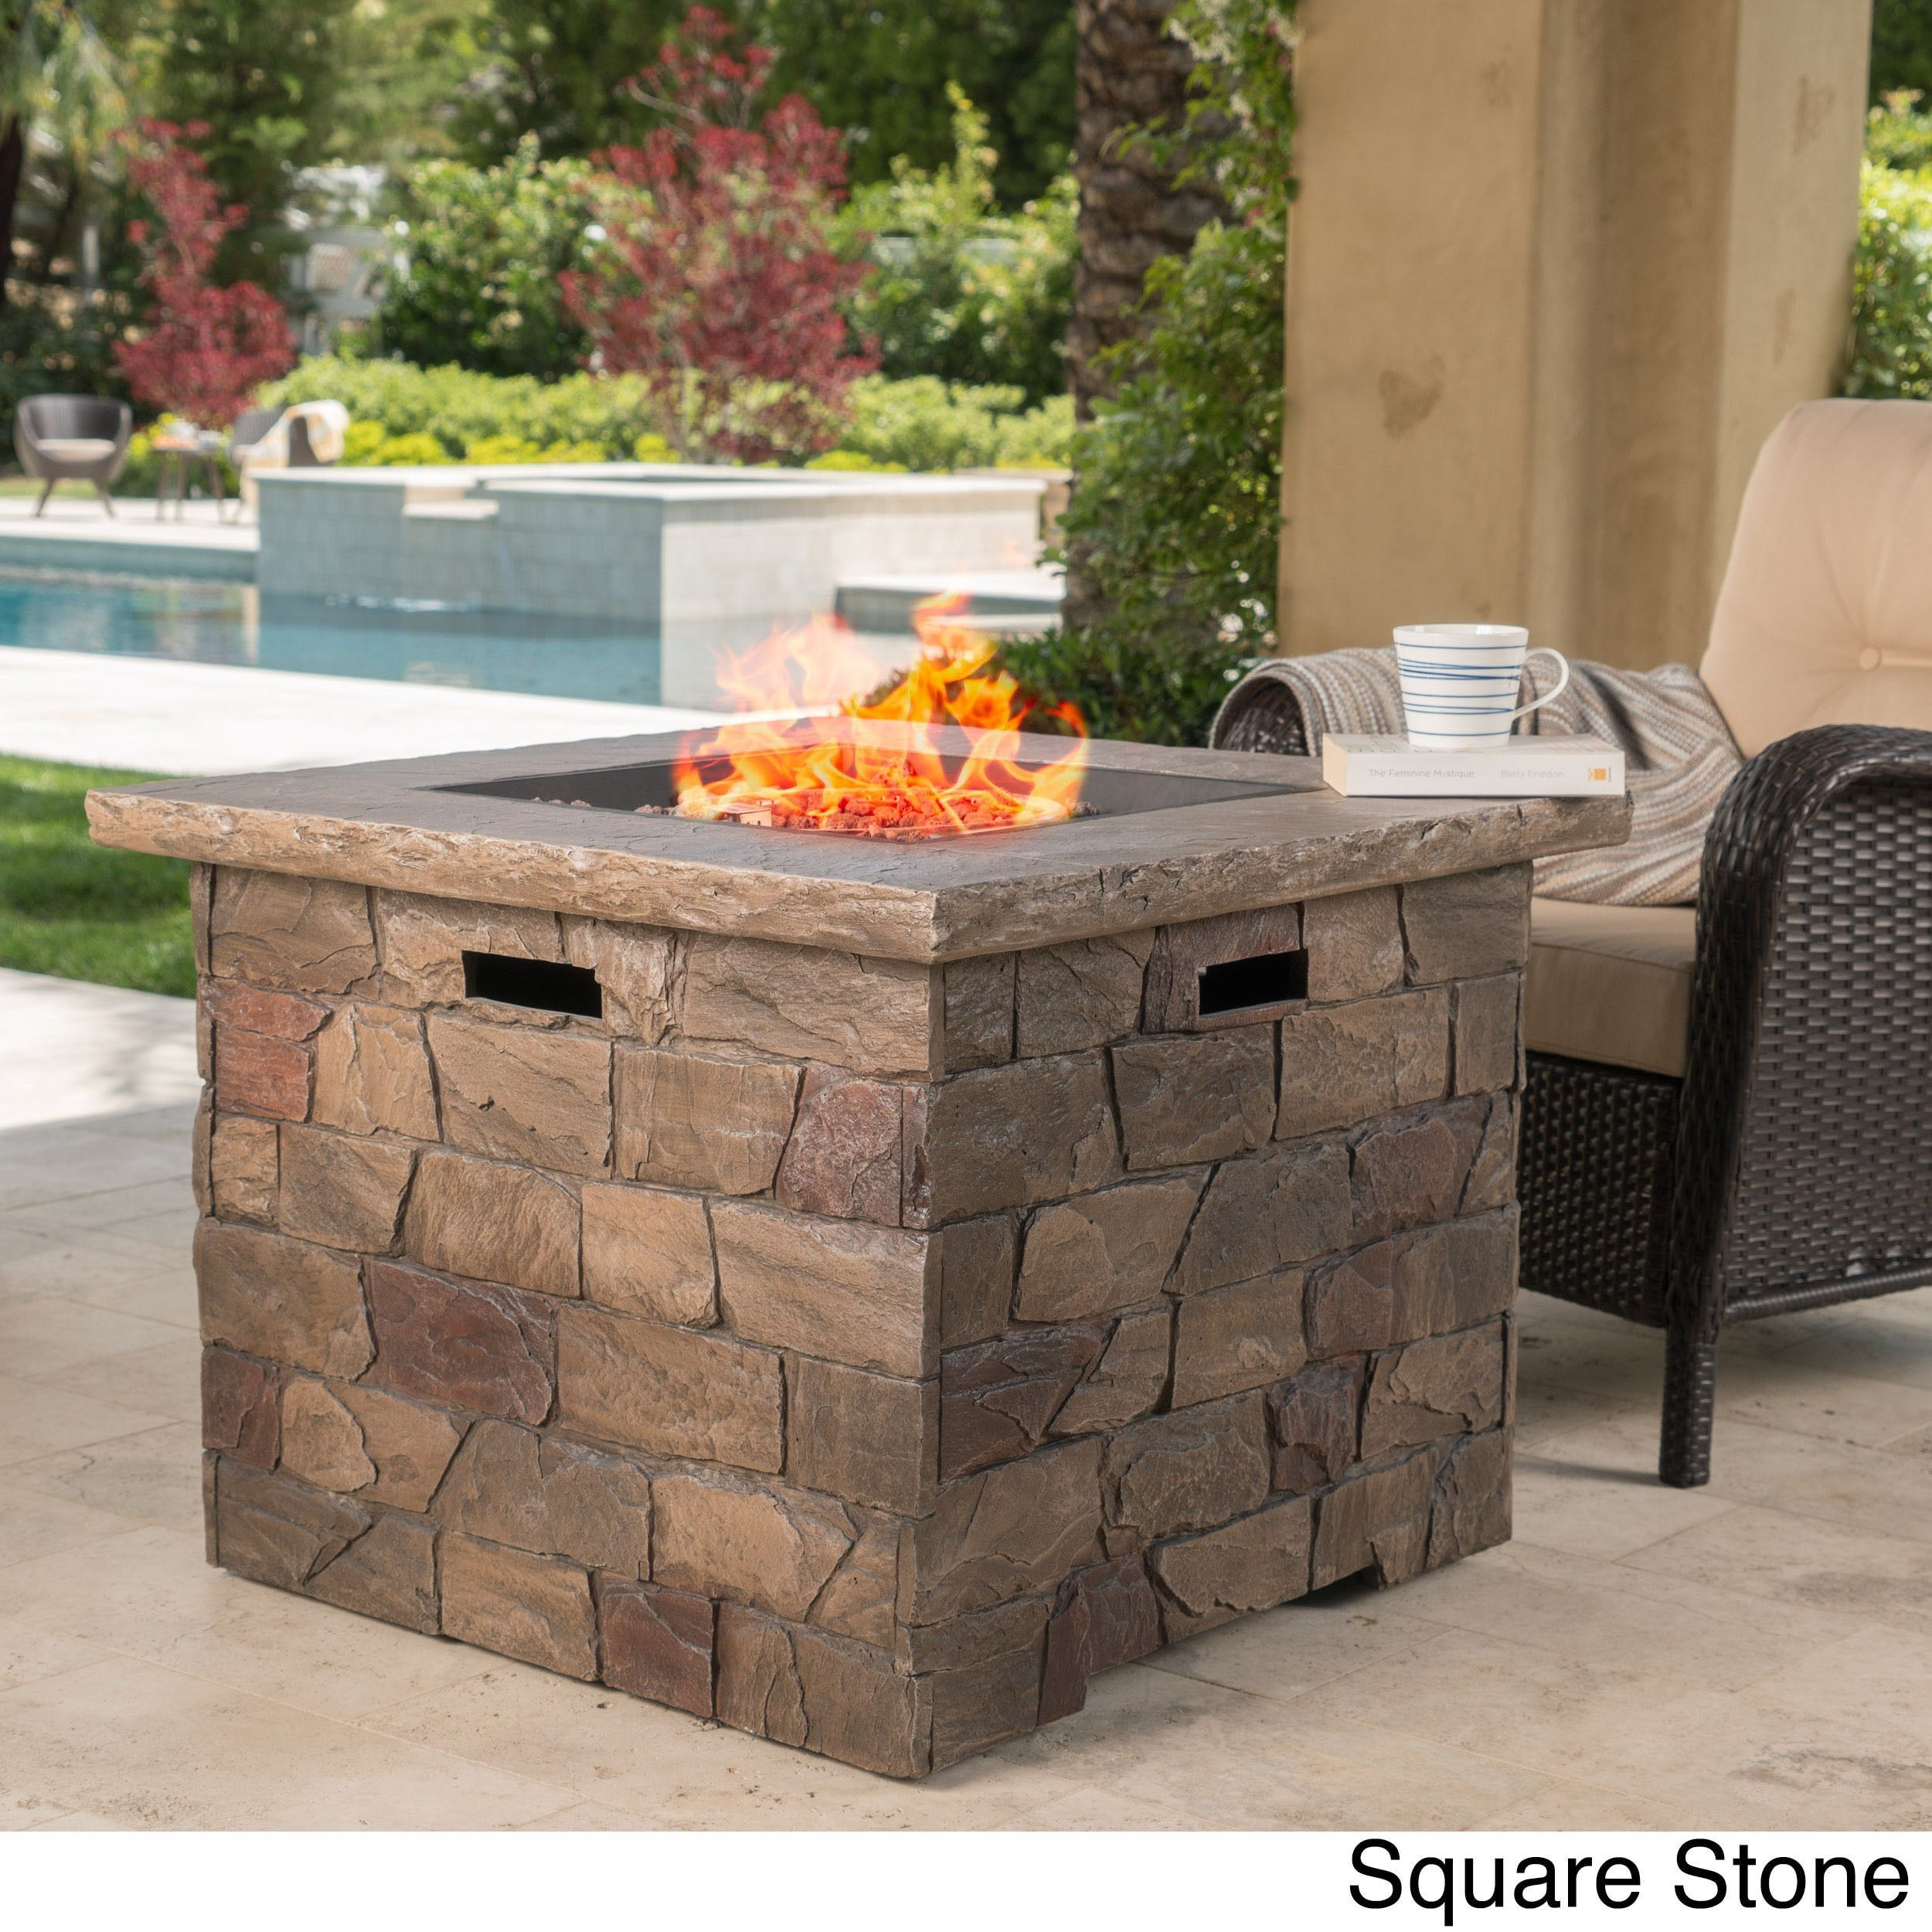 stillwater outdoor natural stone propane fire pit with lava rocks by